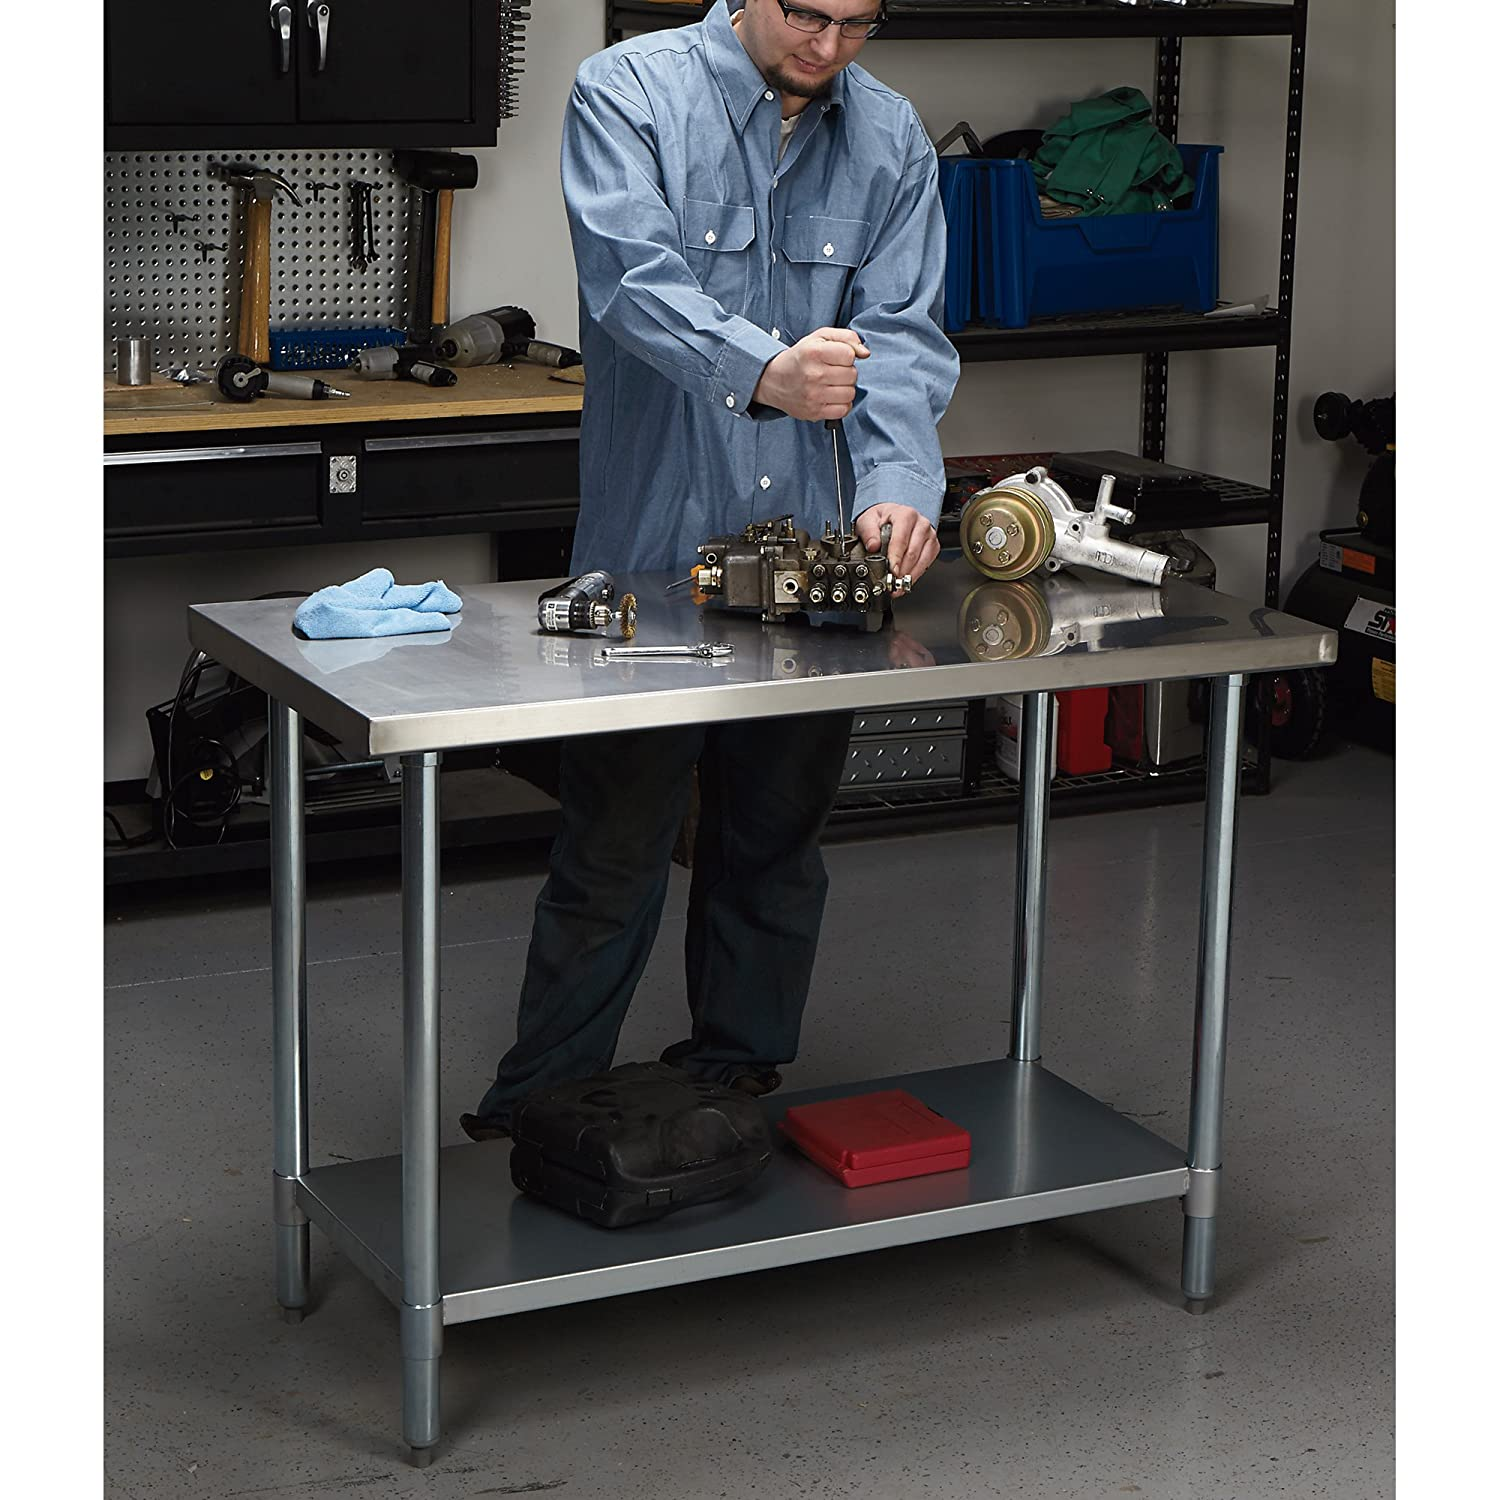 48in.W x 24in.D x 35in.H Roughneck Stainless Steel Work Table